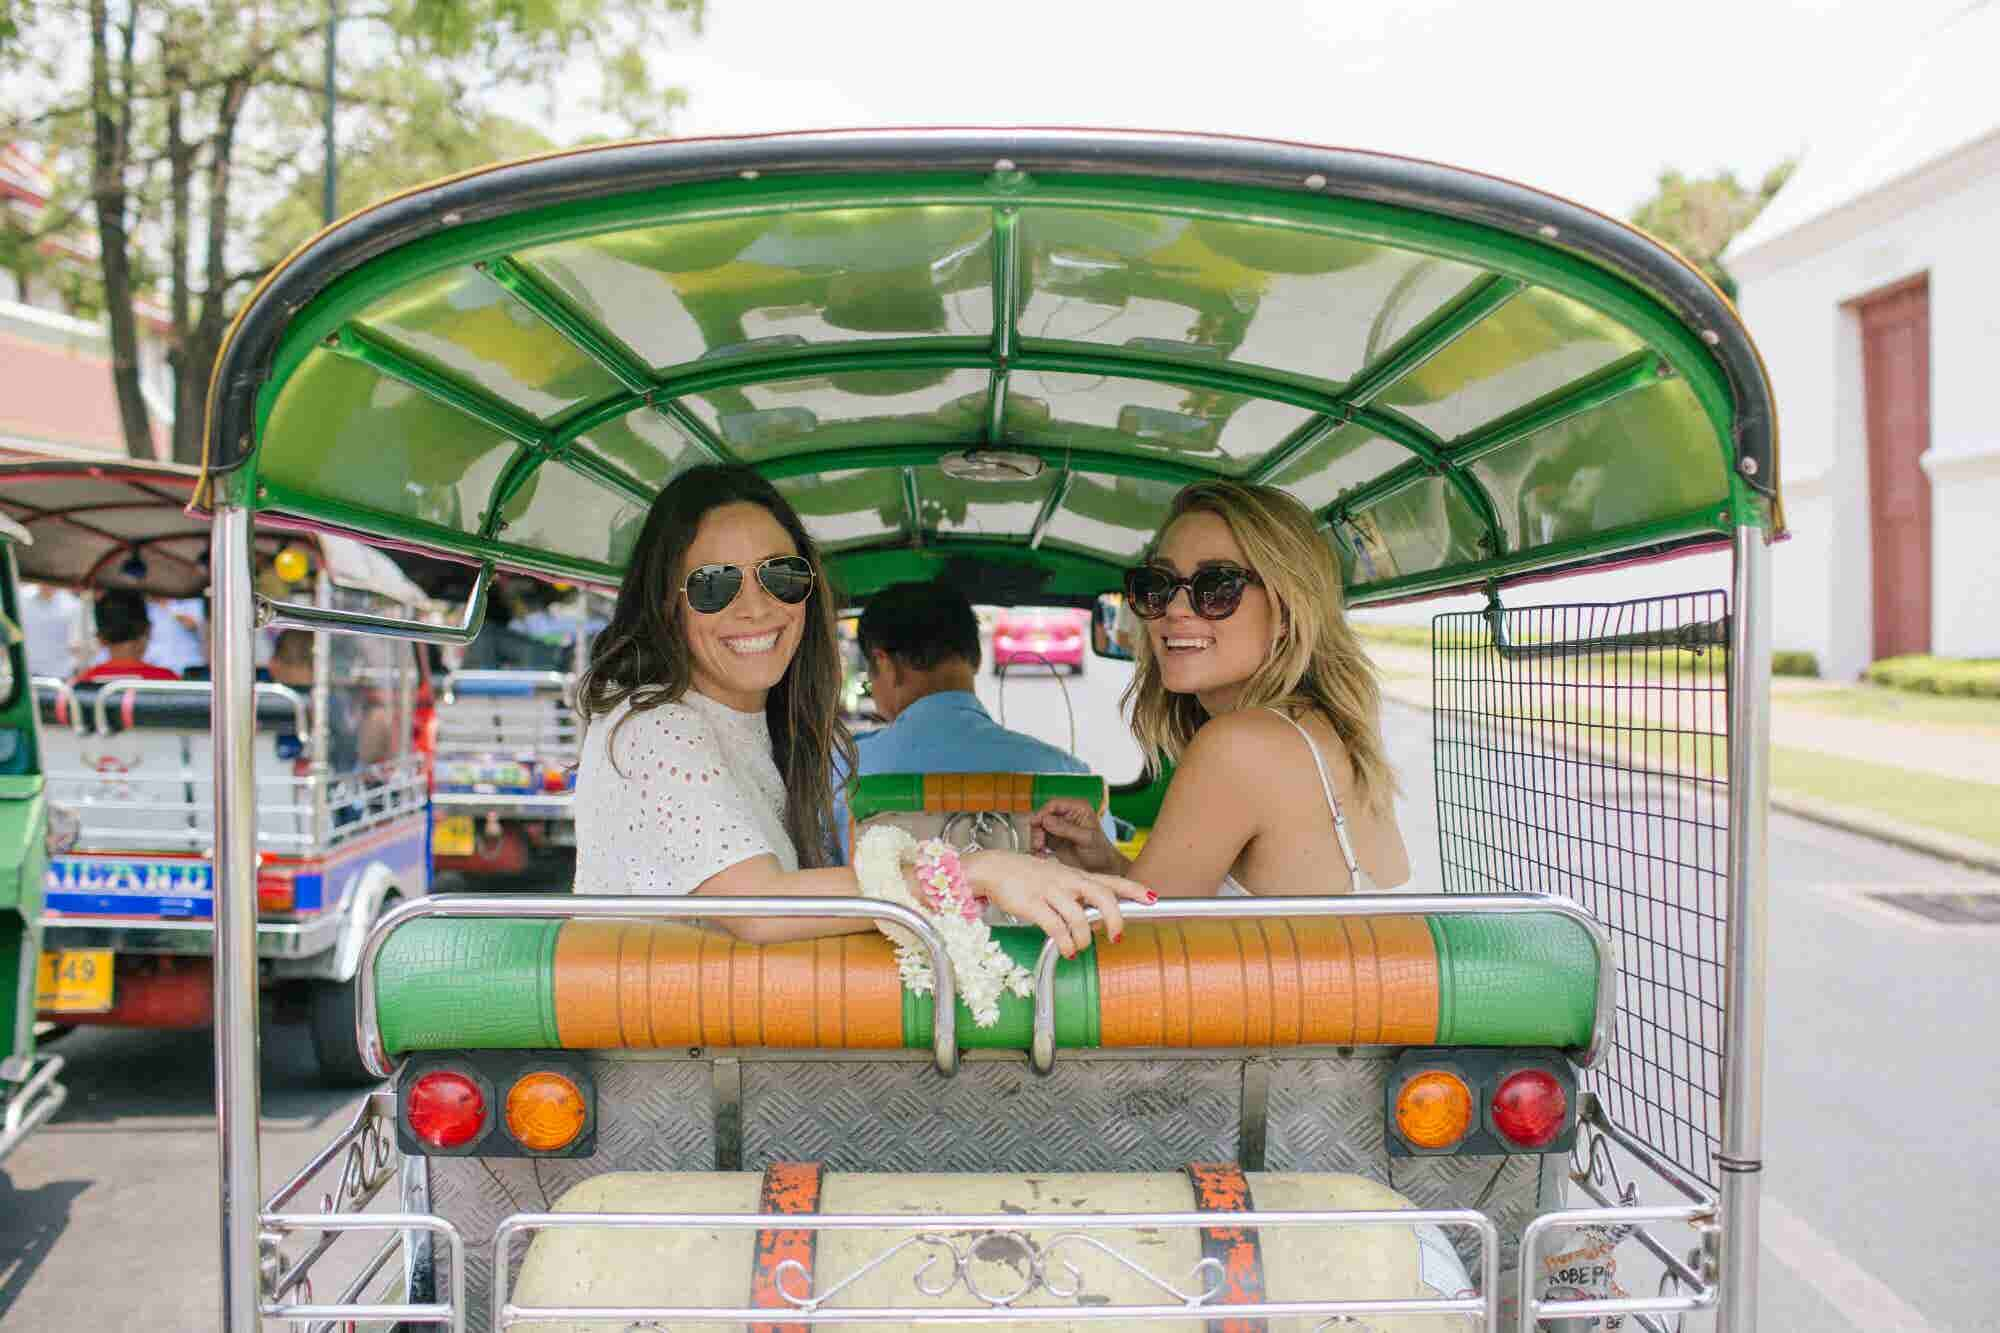 How Lauren Conrad and Hannah Skvarla Curated Handmade Goods From Around the World to Build Nonprofit The Little Market